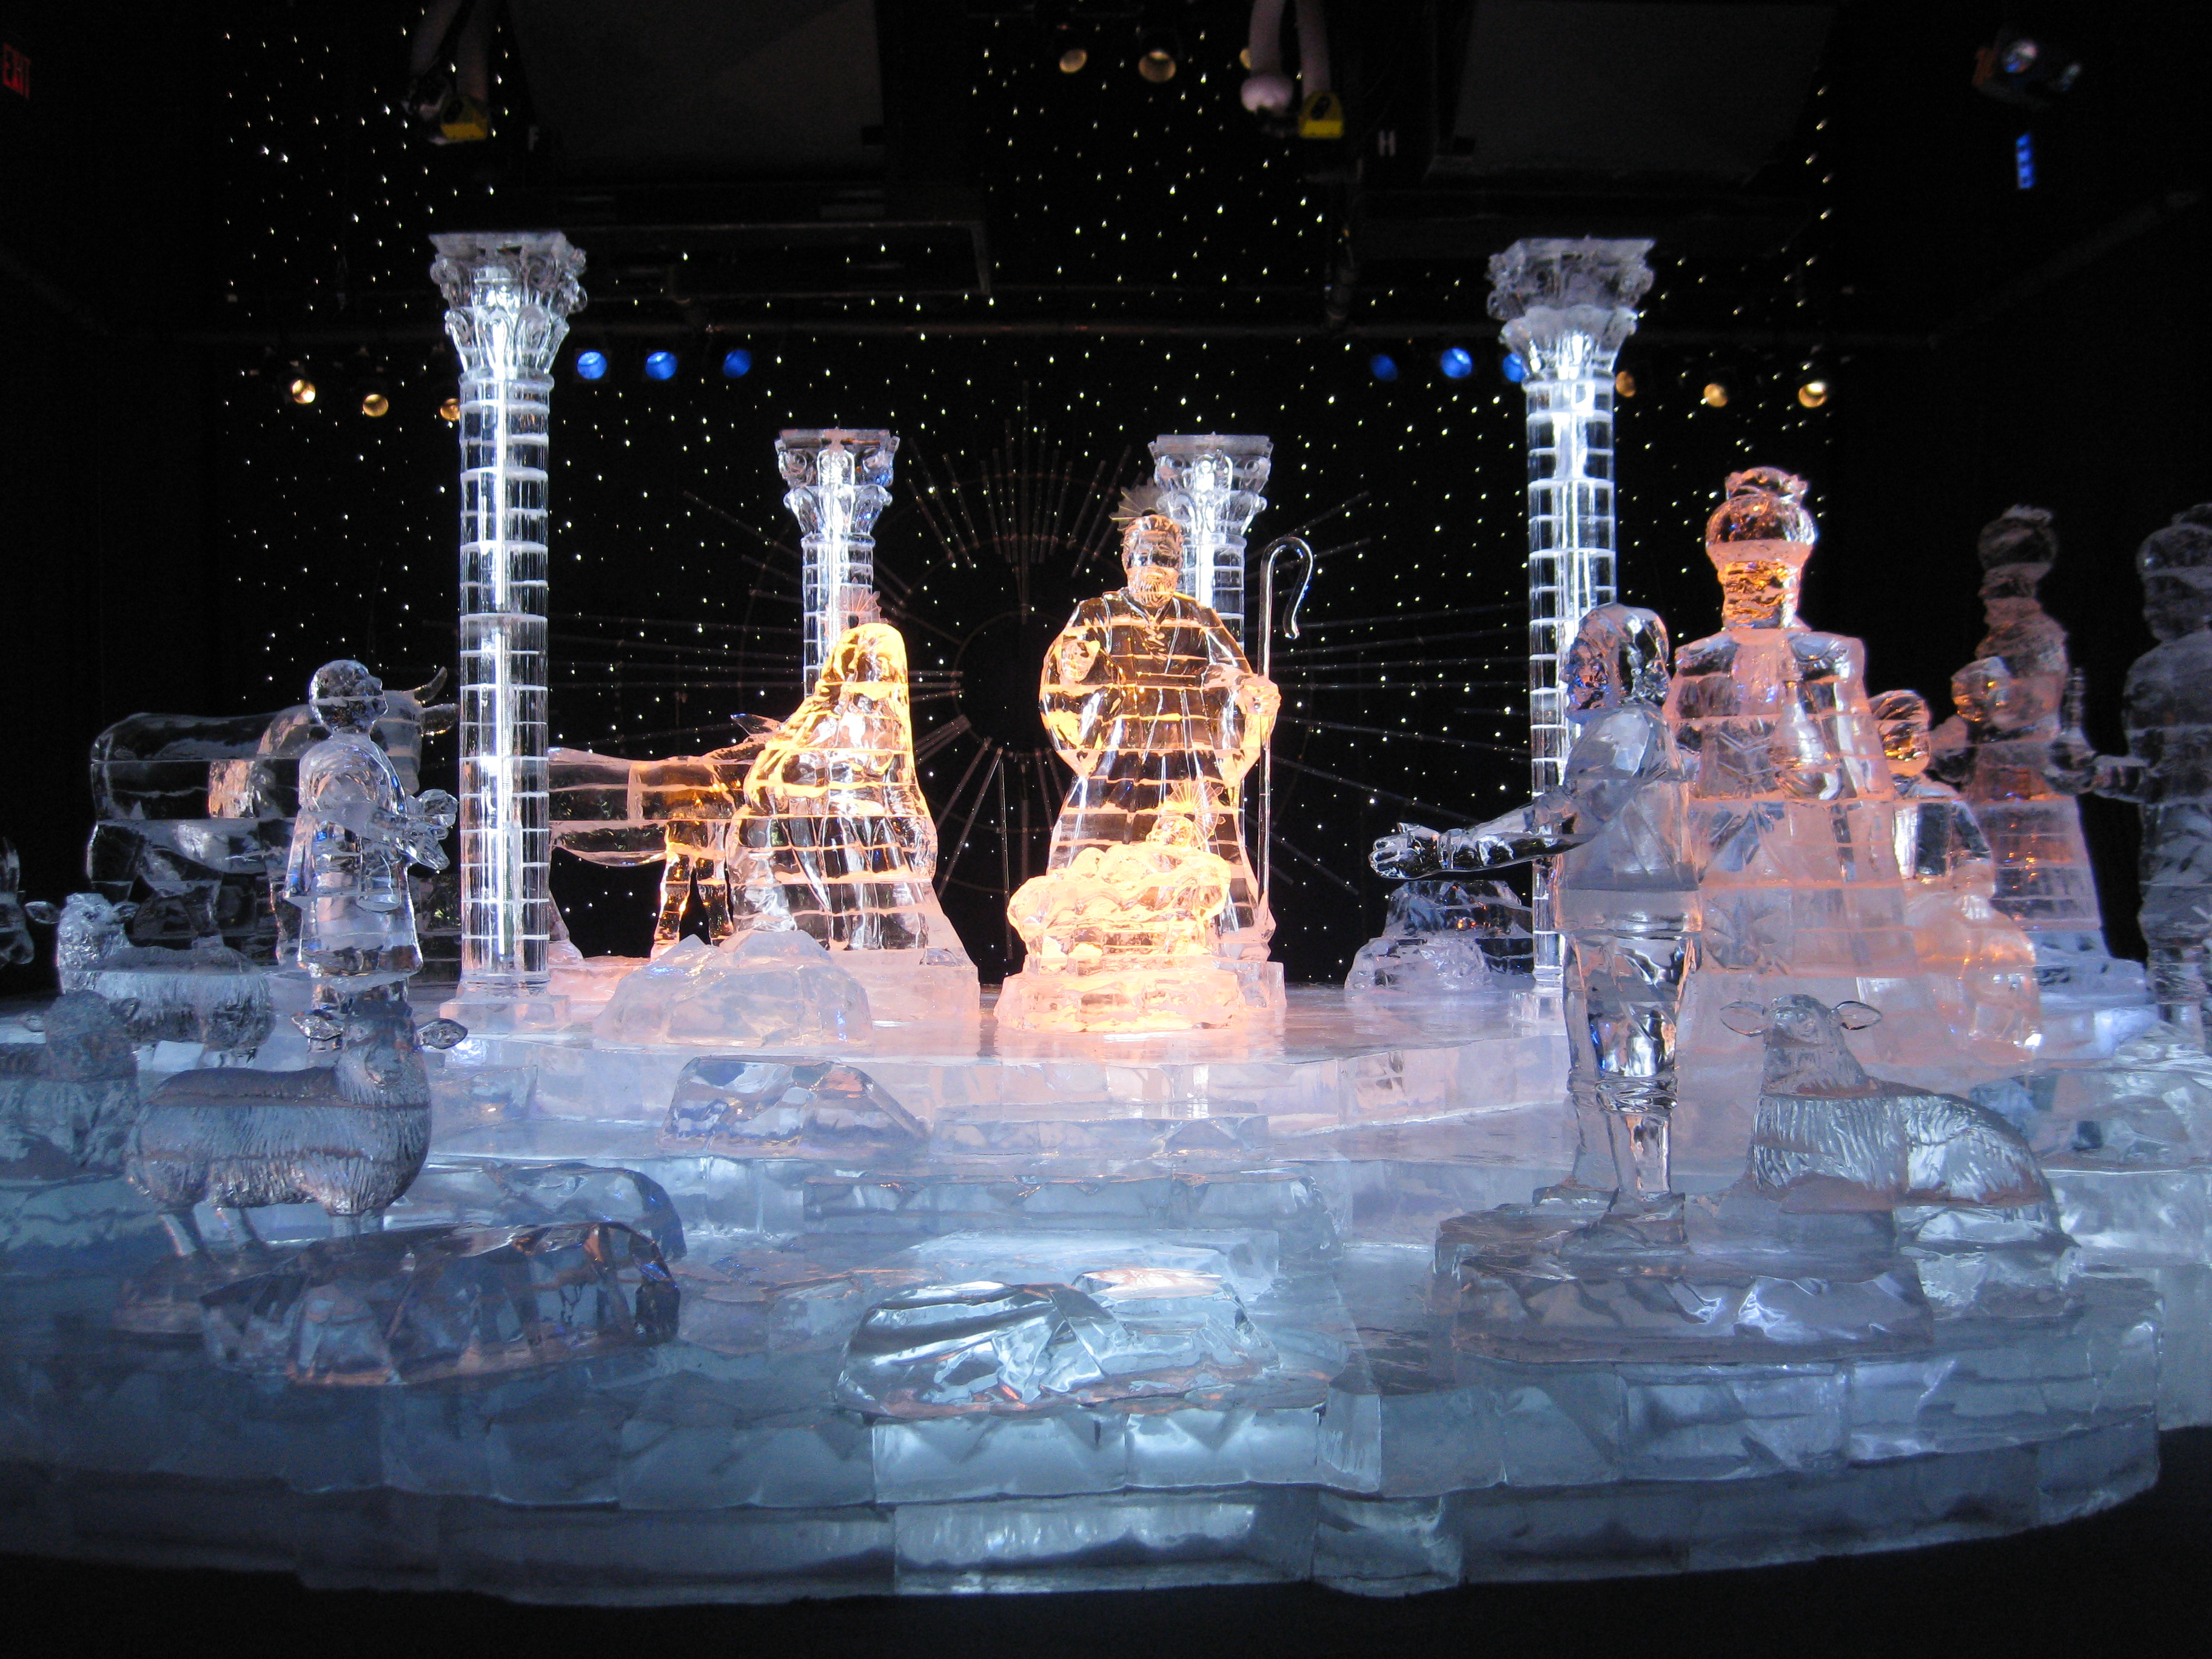 ICE! in Nashville: The Coolest Place on Earth